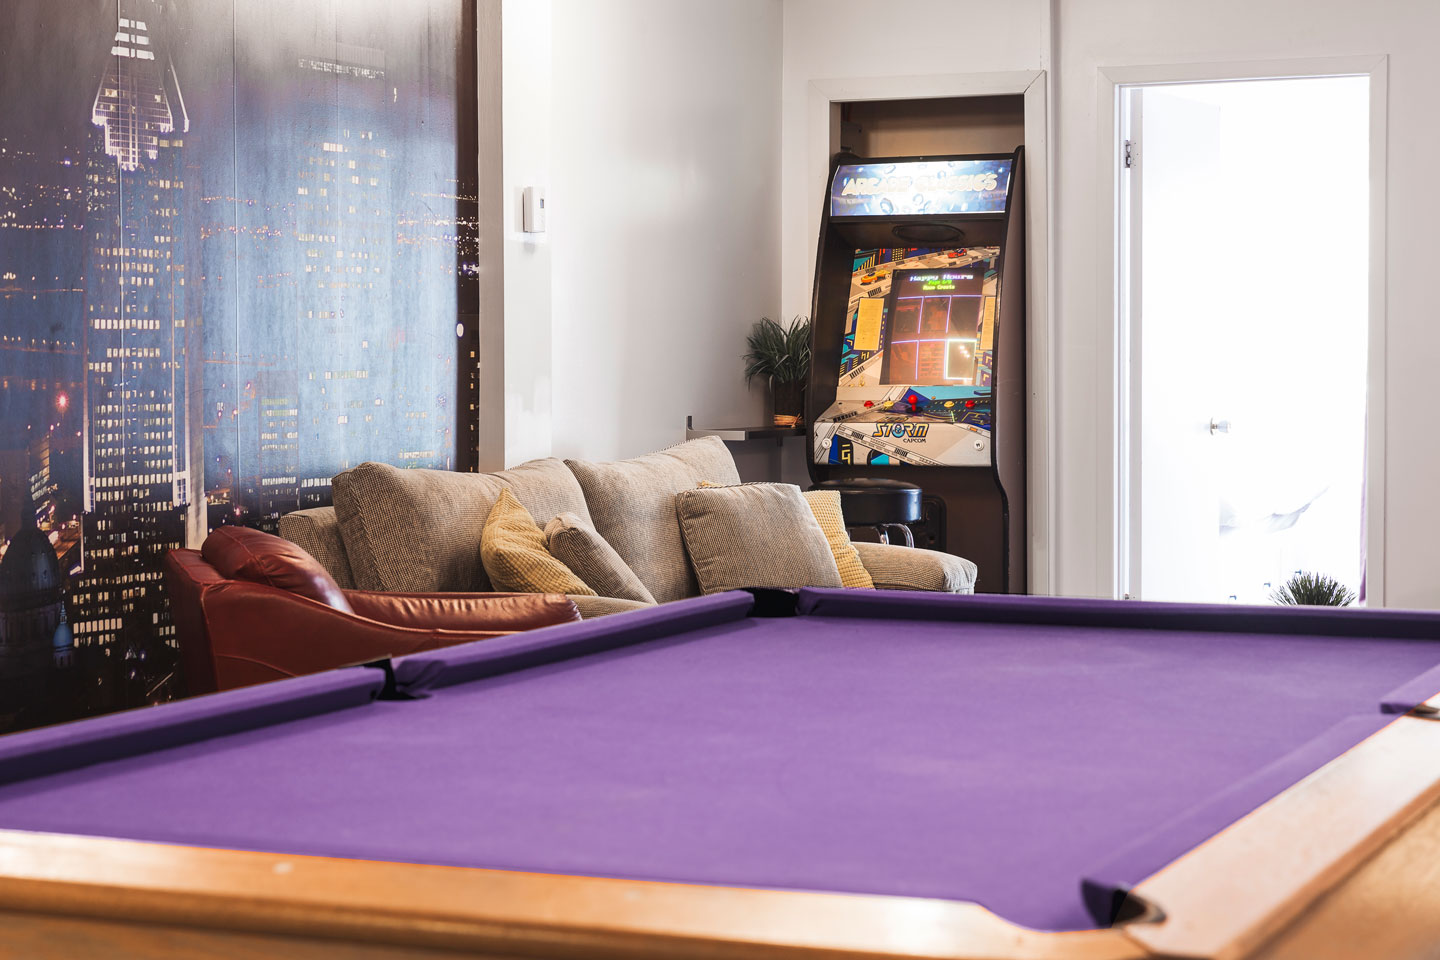 Entertainer: playroom with a pool table and an arcade machine